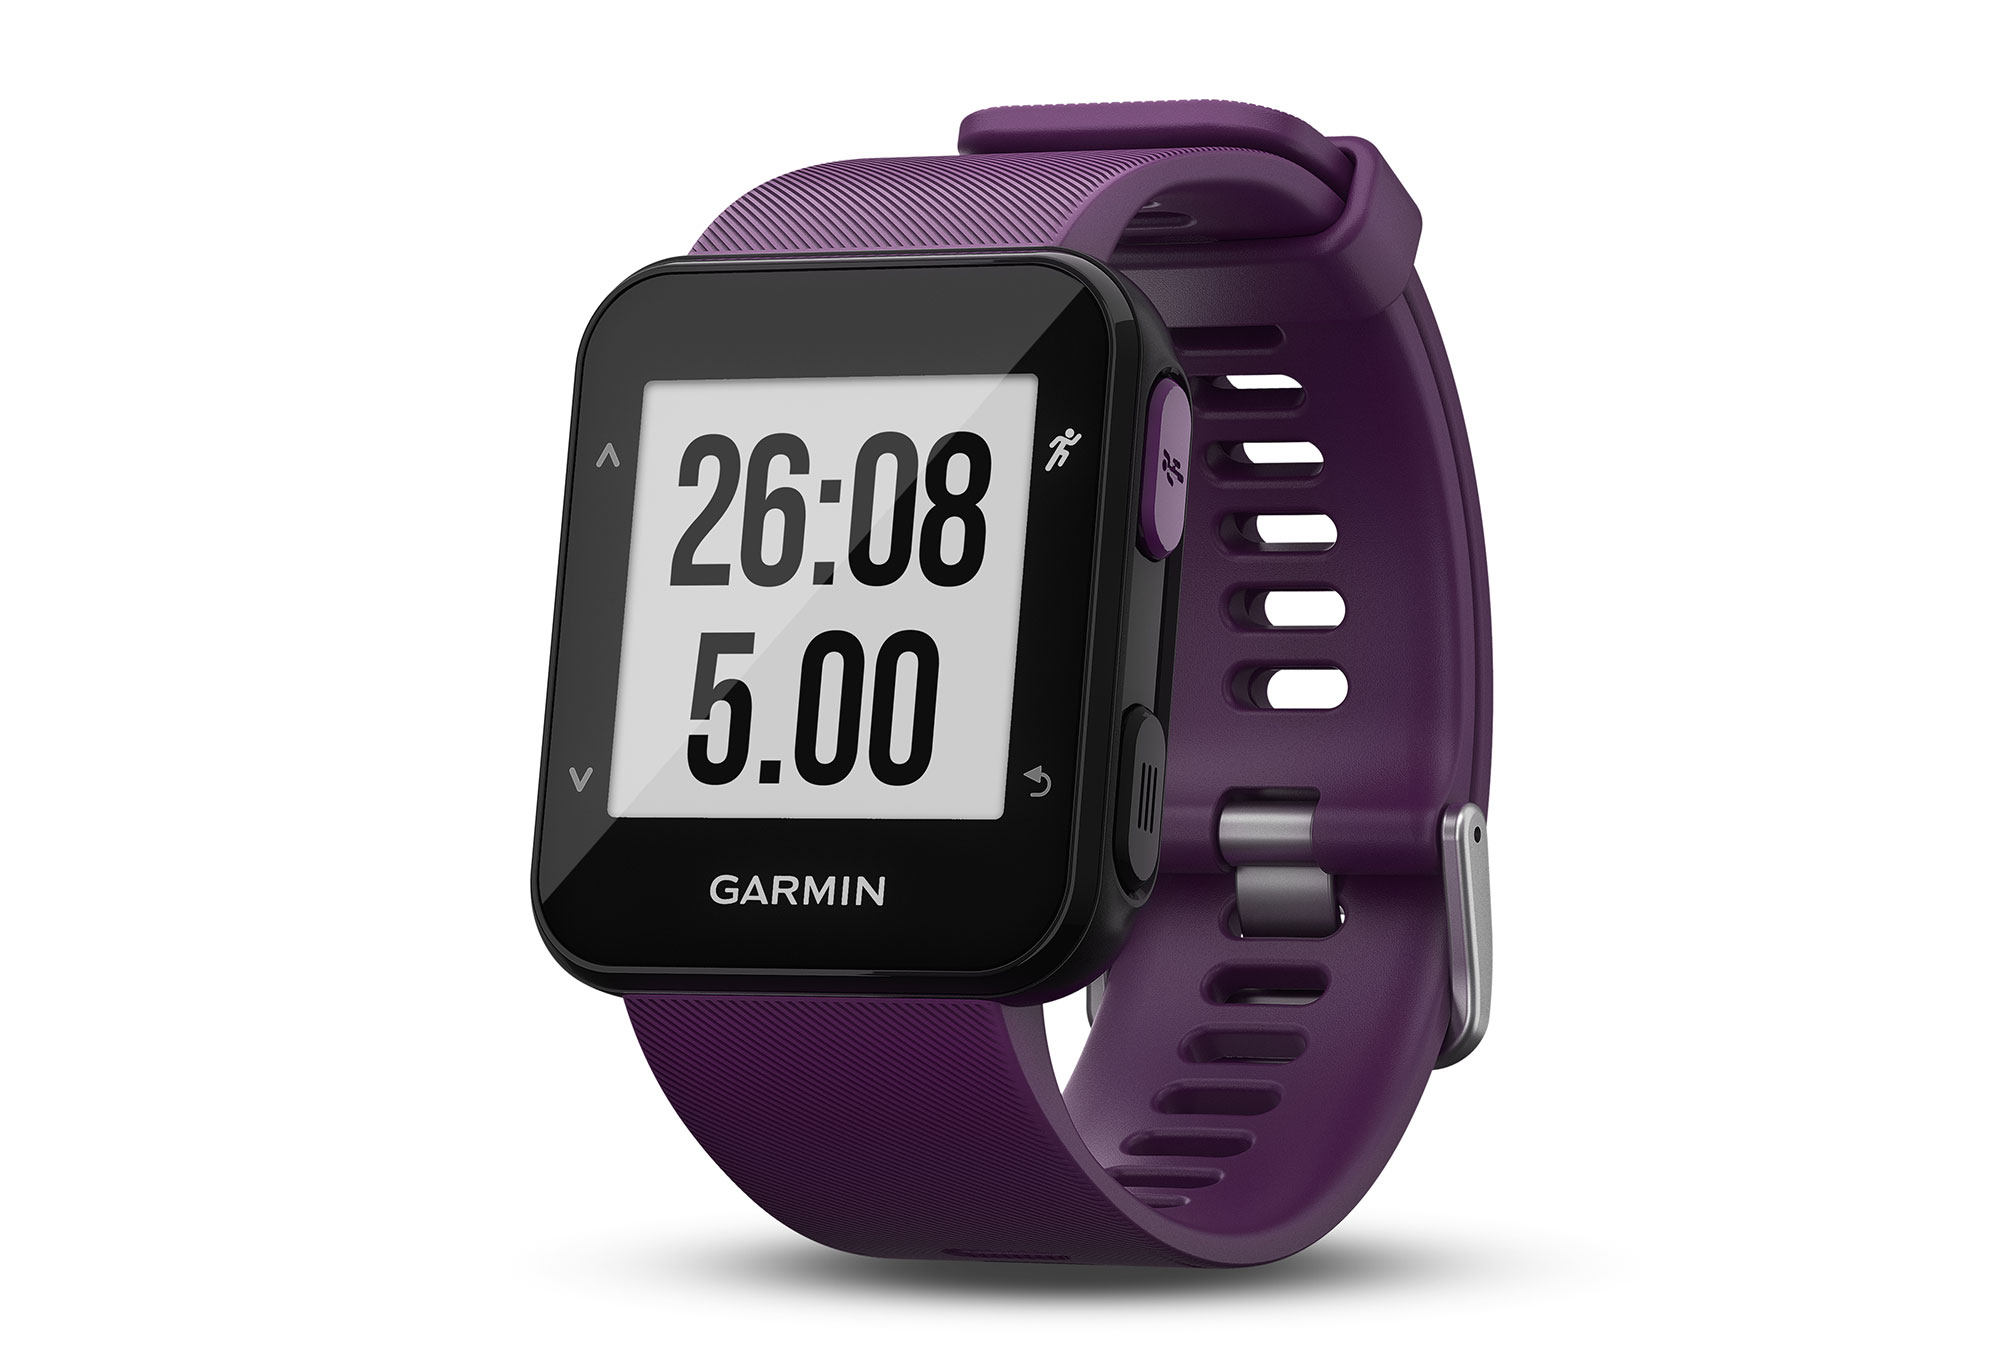 montre gps garmin forerunner 30 violet. Black Bedroom Furniture Sets. Home Design Ideas